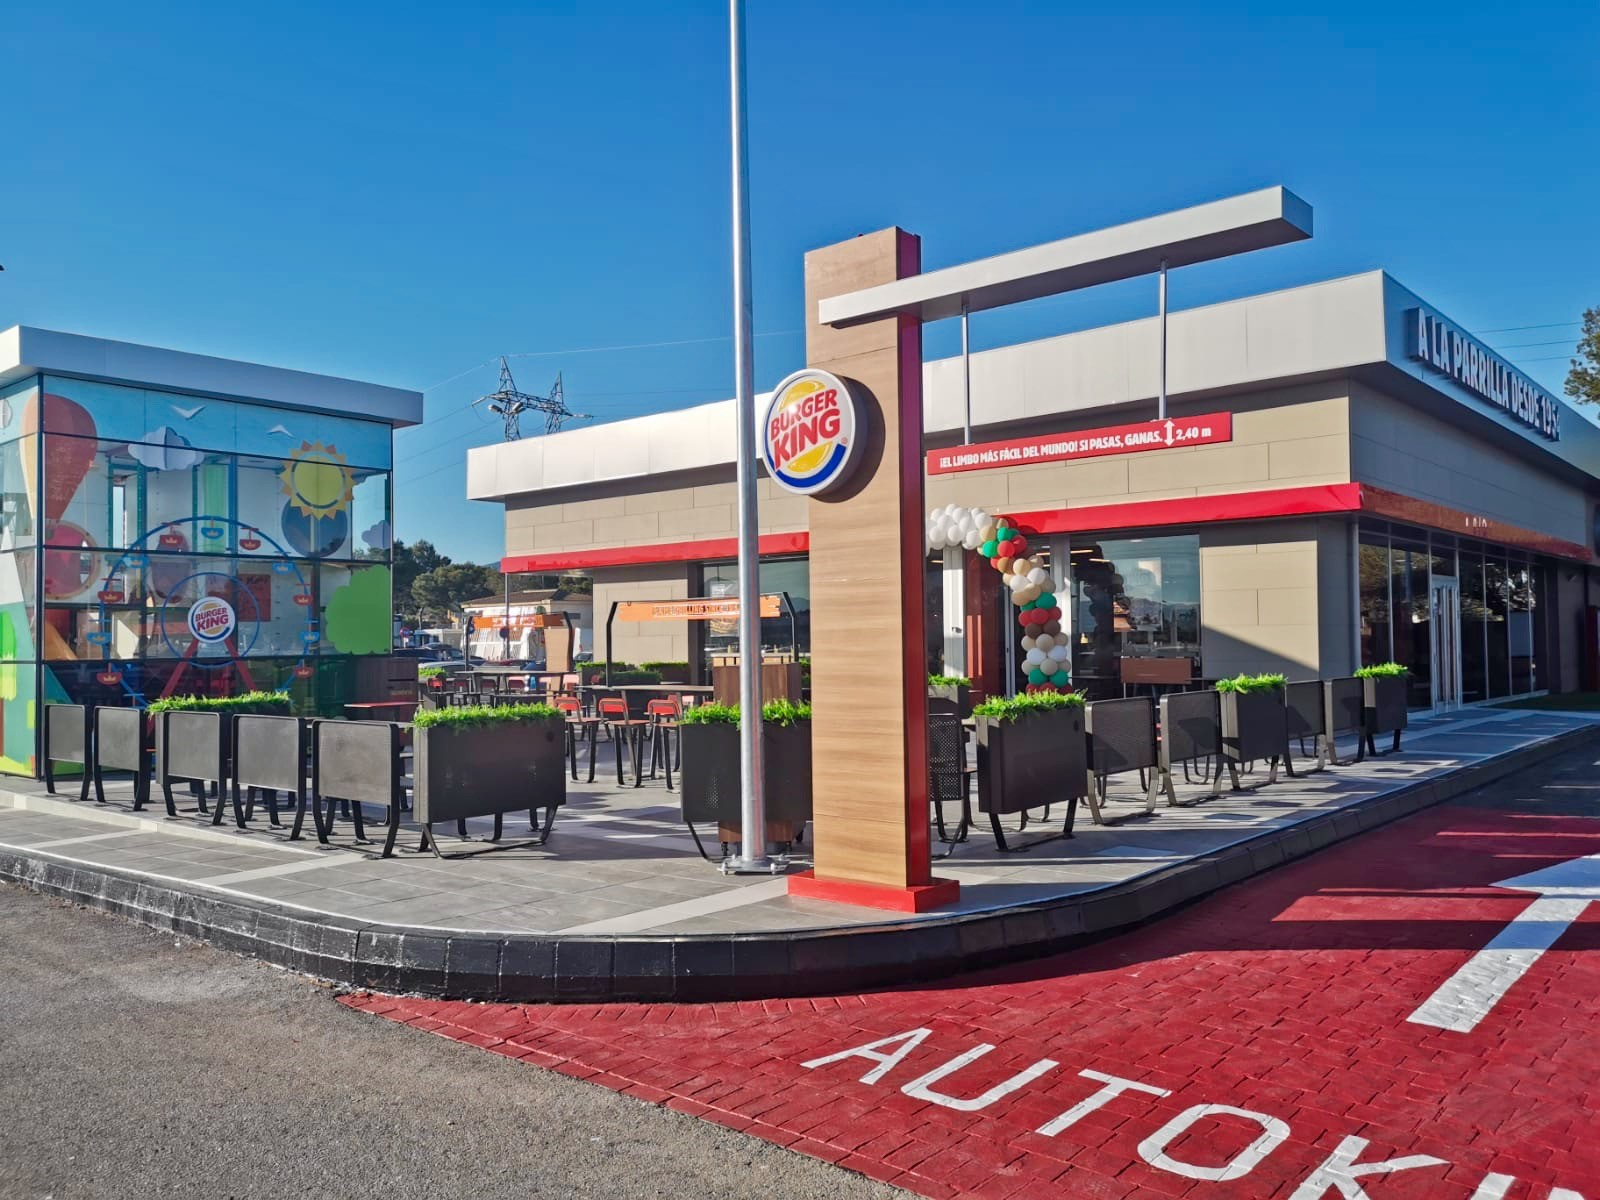 Burger King abre un nuevo local en Palma de Mayorca